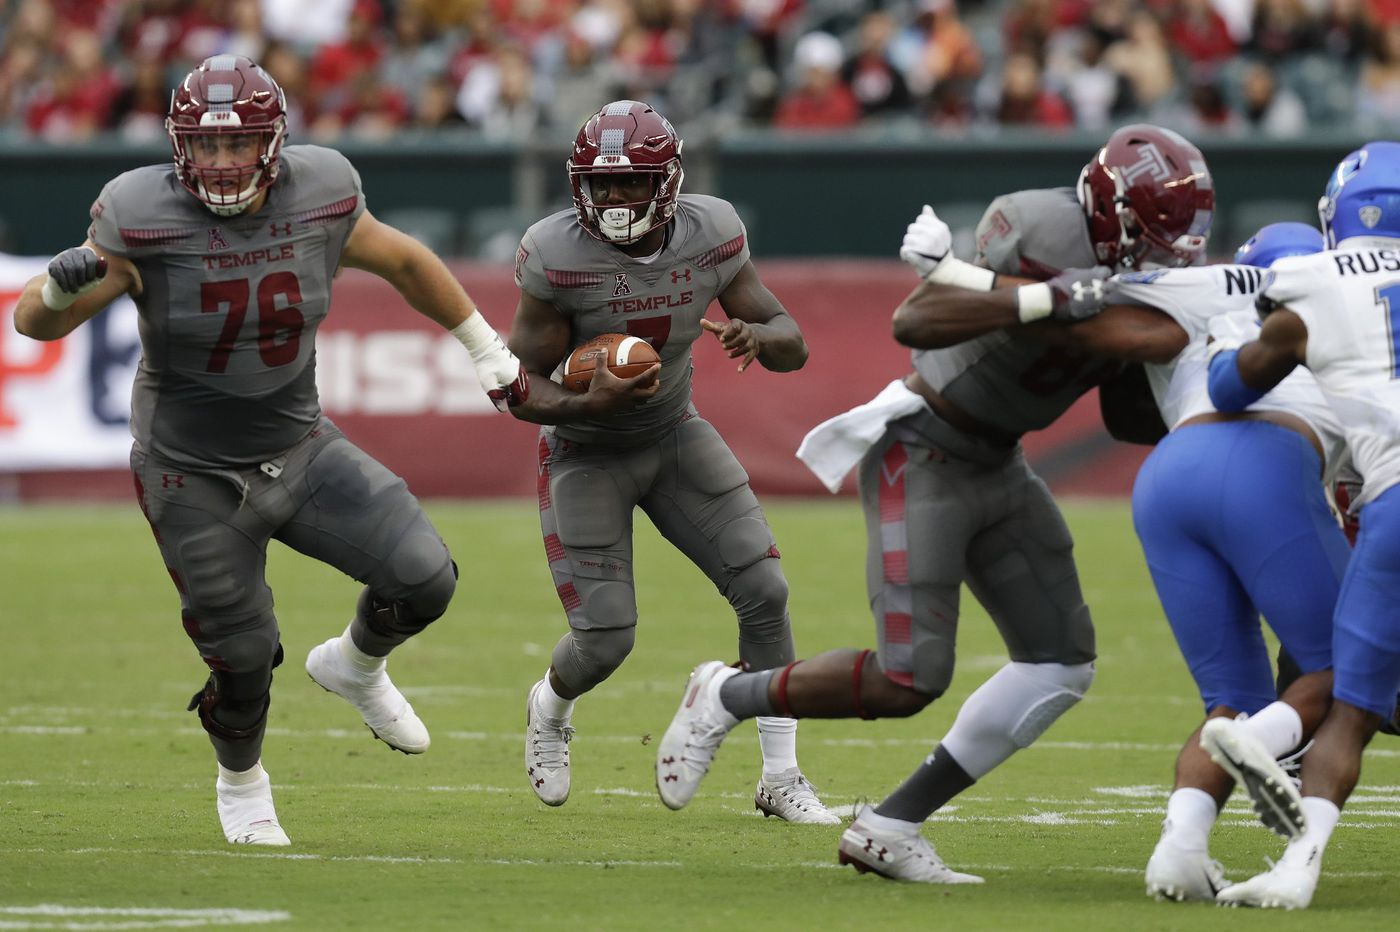 Temple has a new left tackle who is fresh out of two weeks of quarantine